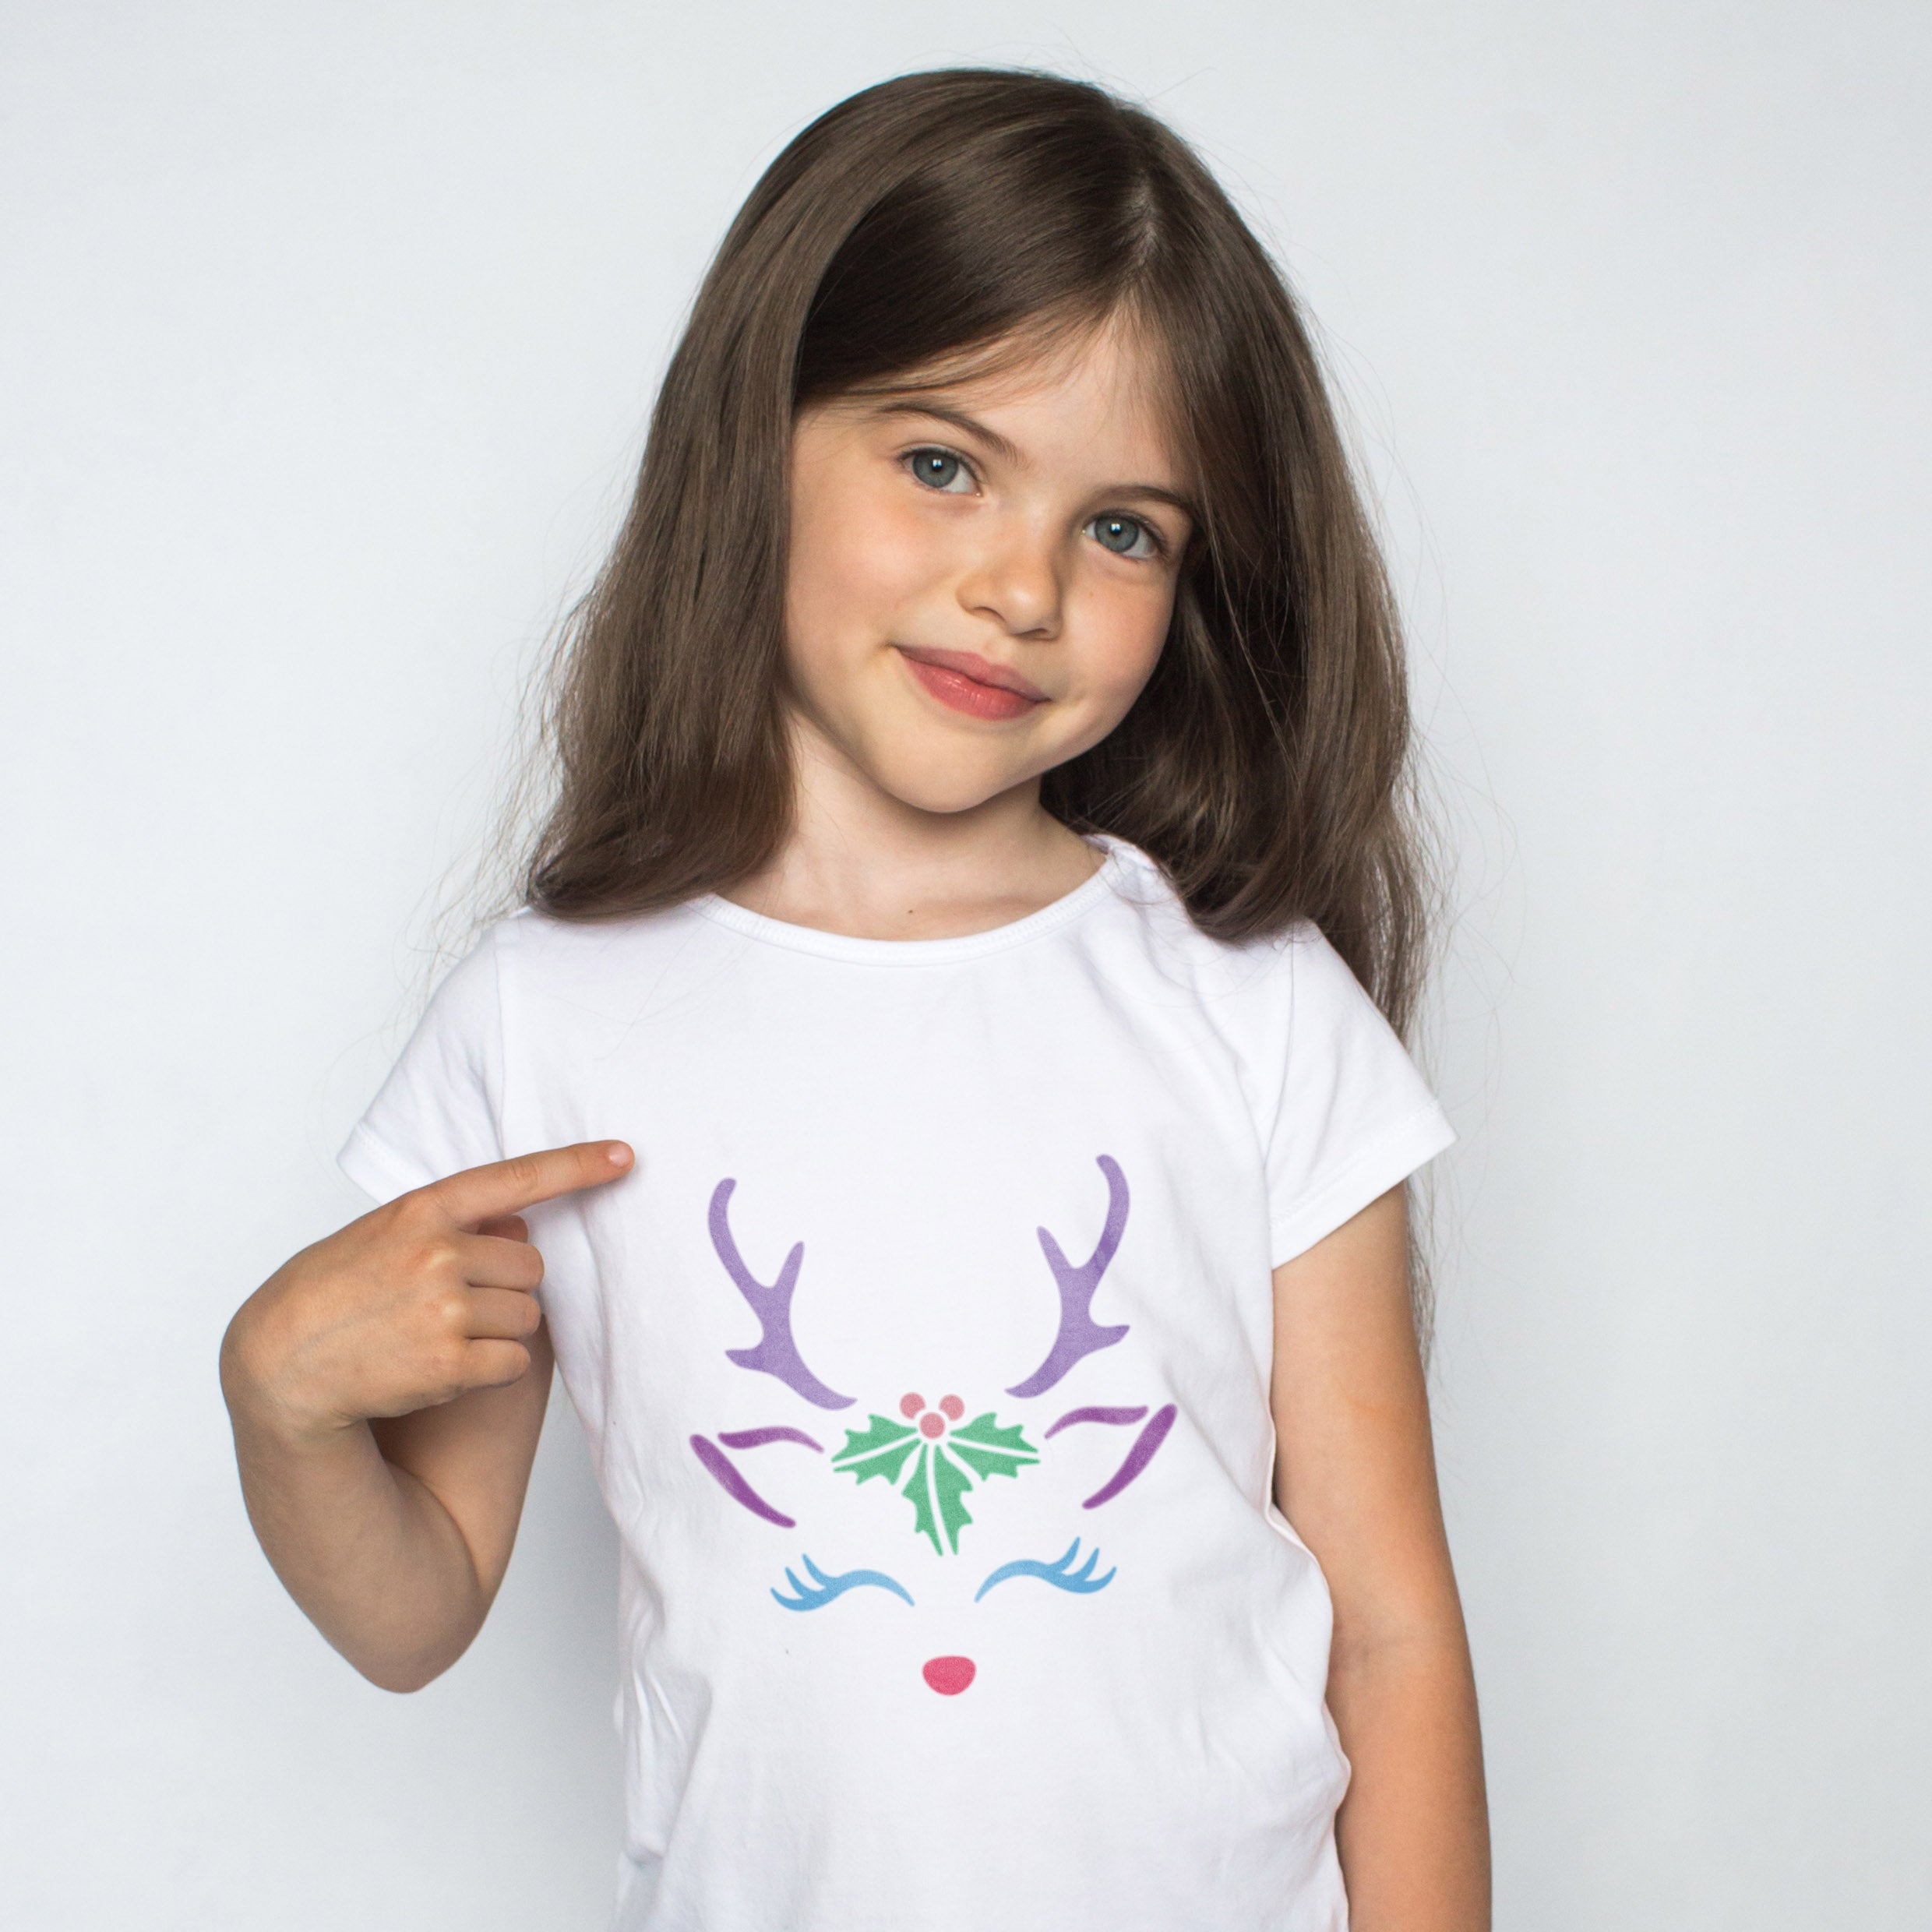 CraftStar Reindeer Face Stencil on T shirt